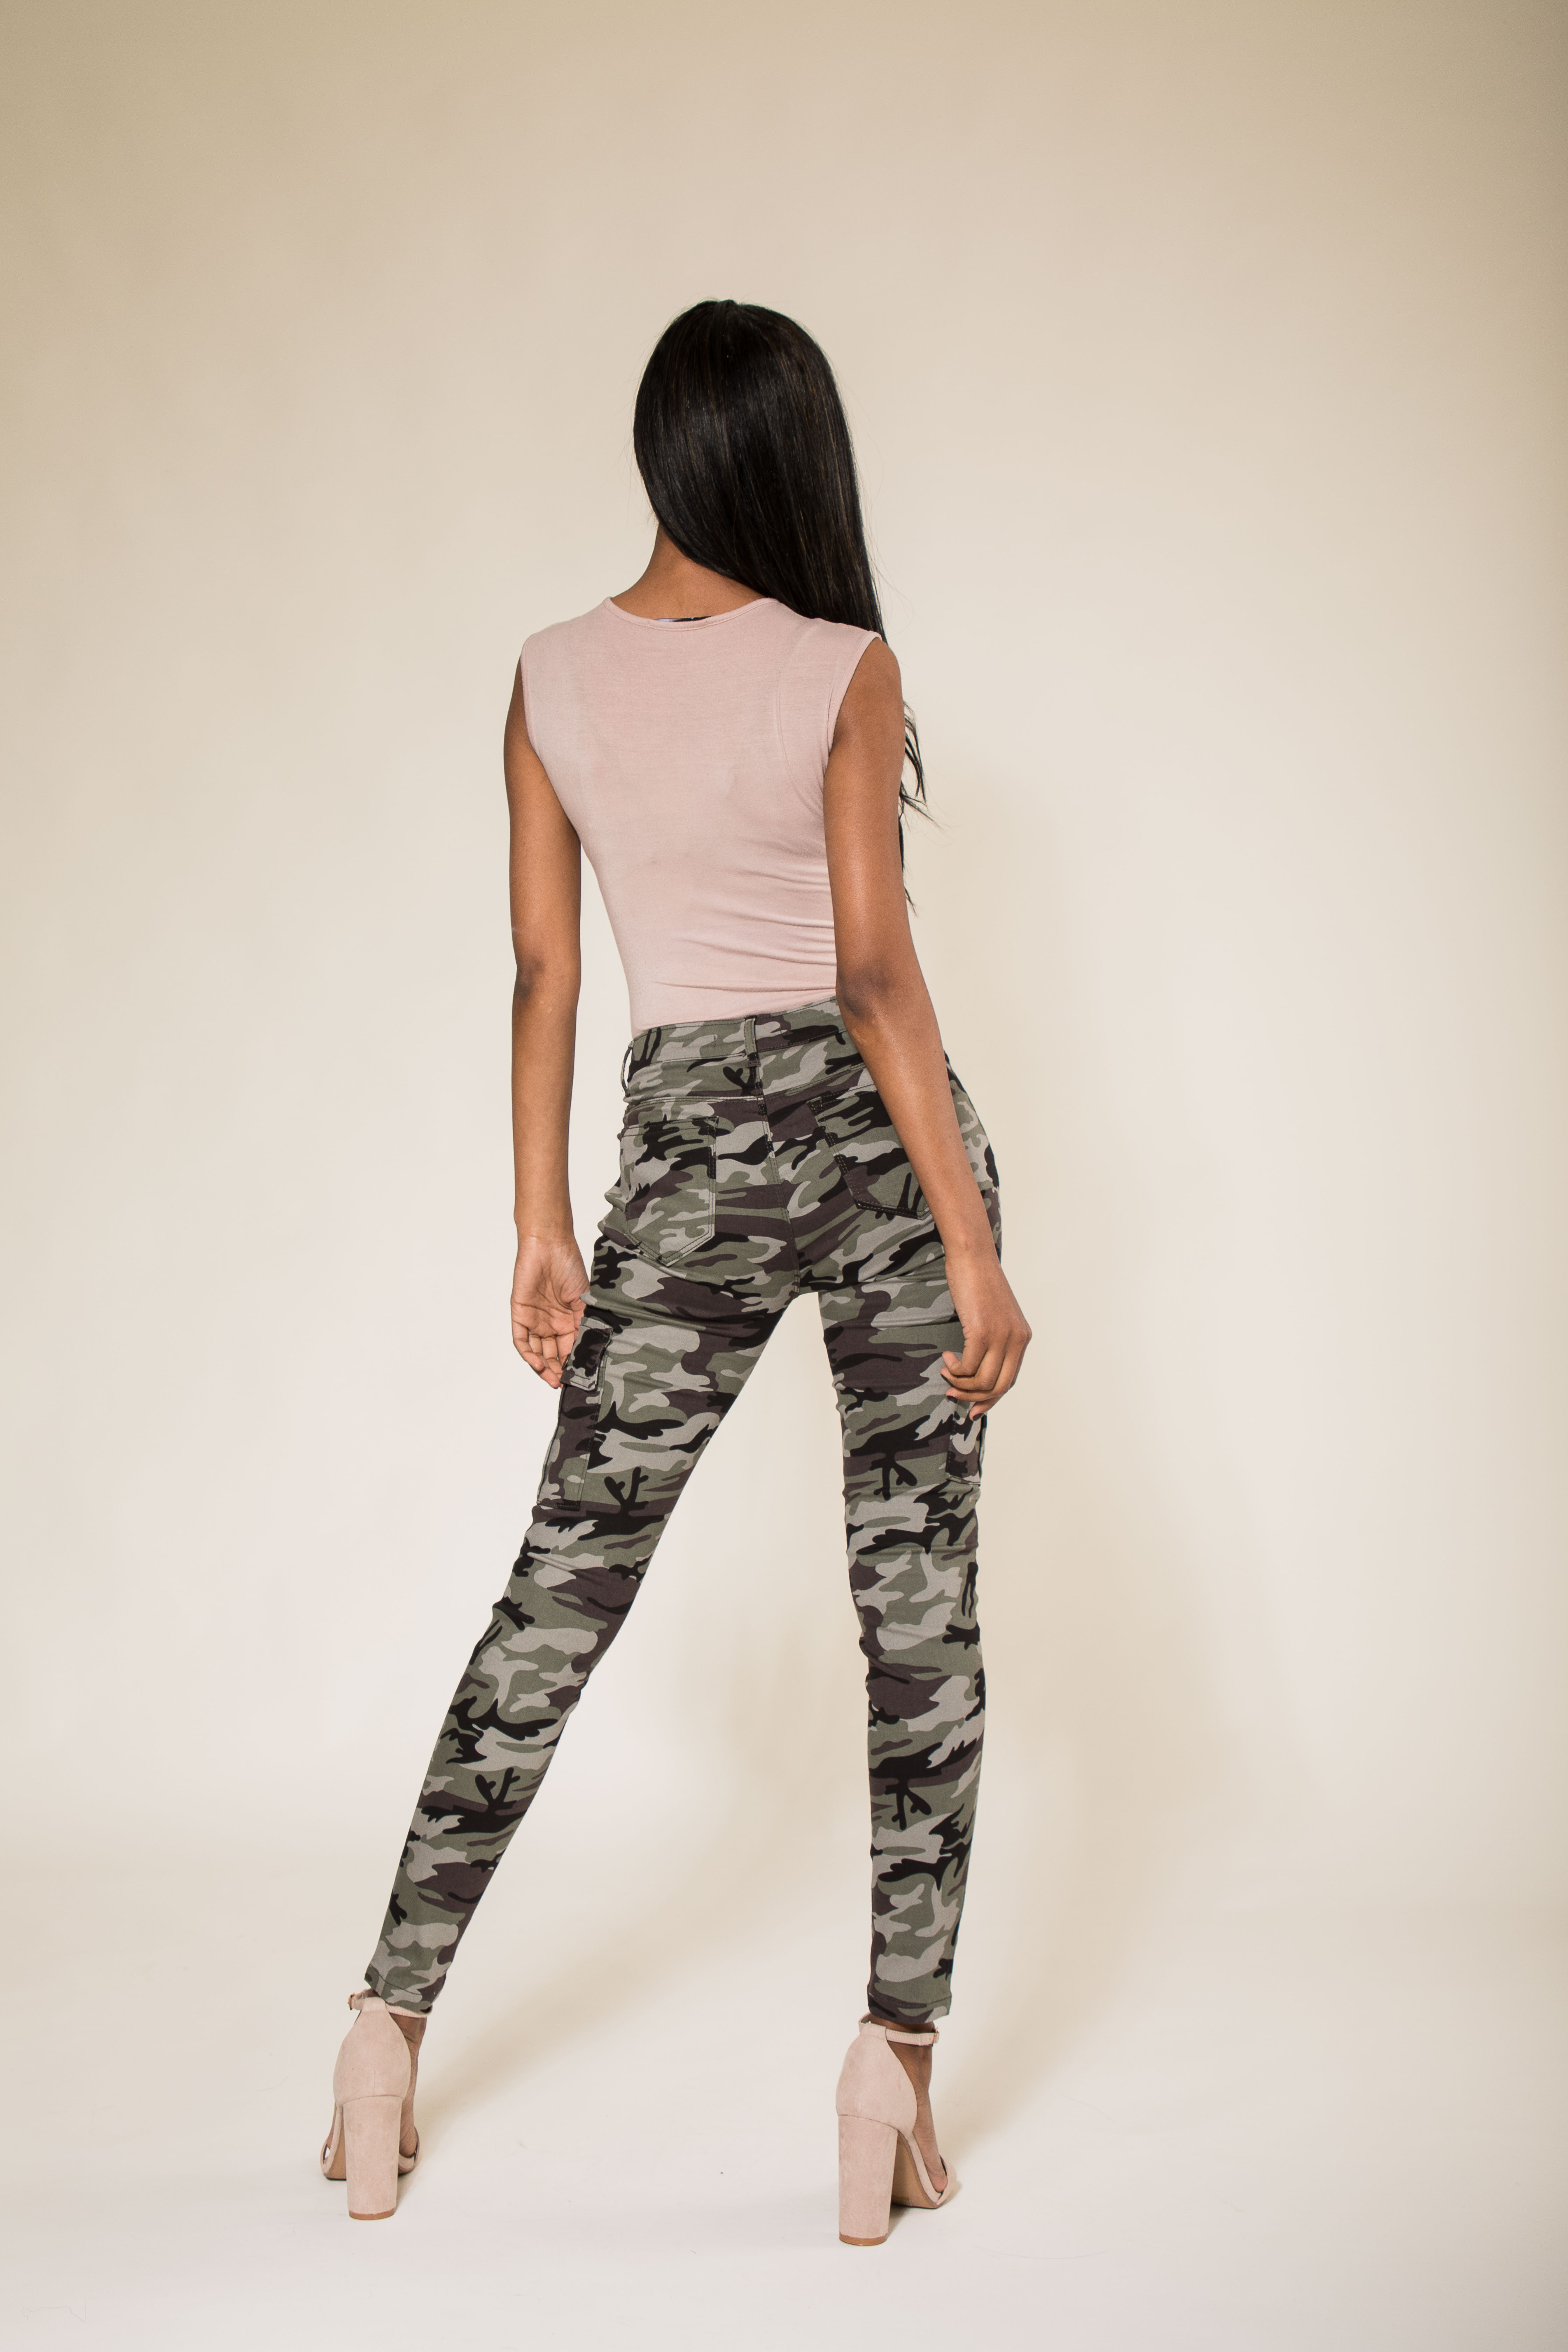 8800706a03b25 Womens Army Camo Pants Ladies Camouflage Casual Stretchy Skinny Jeans Size 6 -14